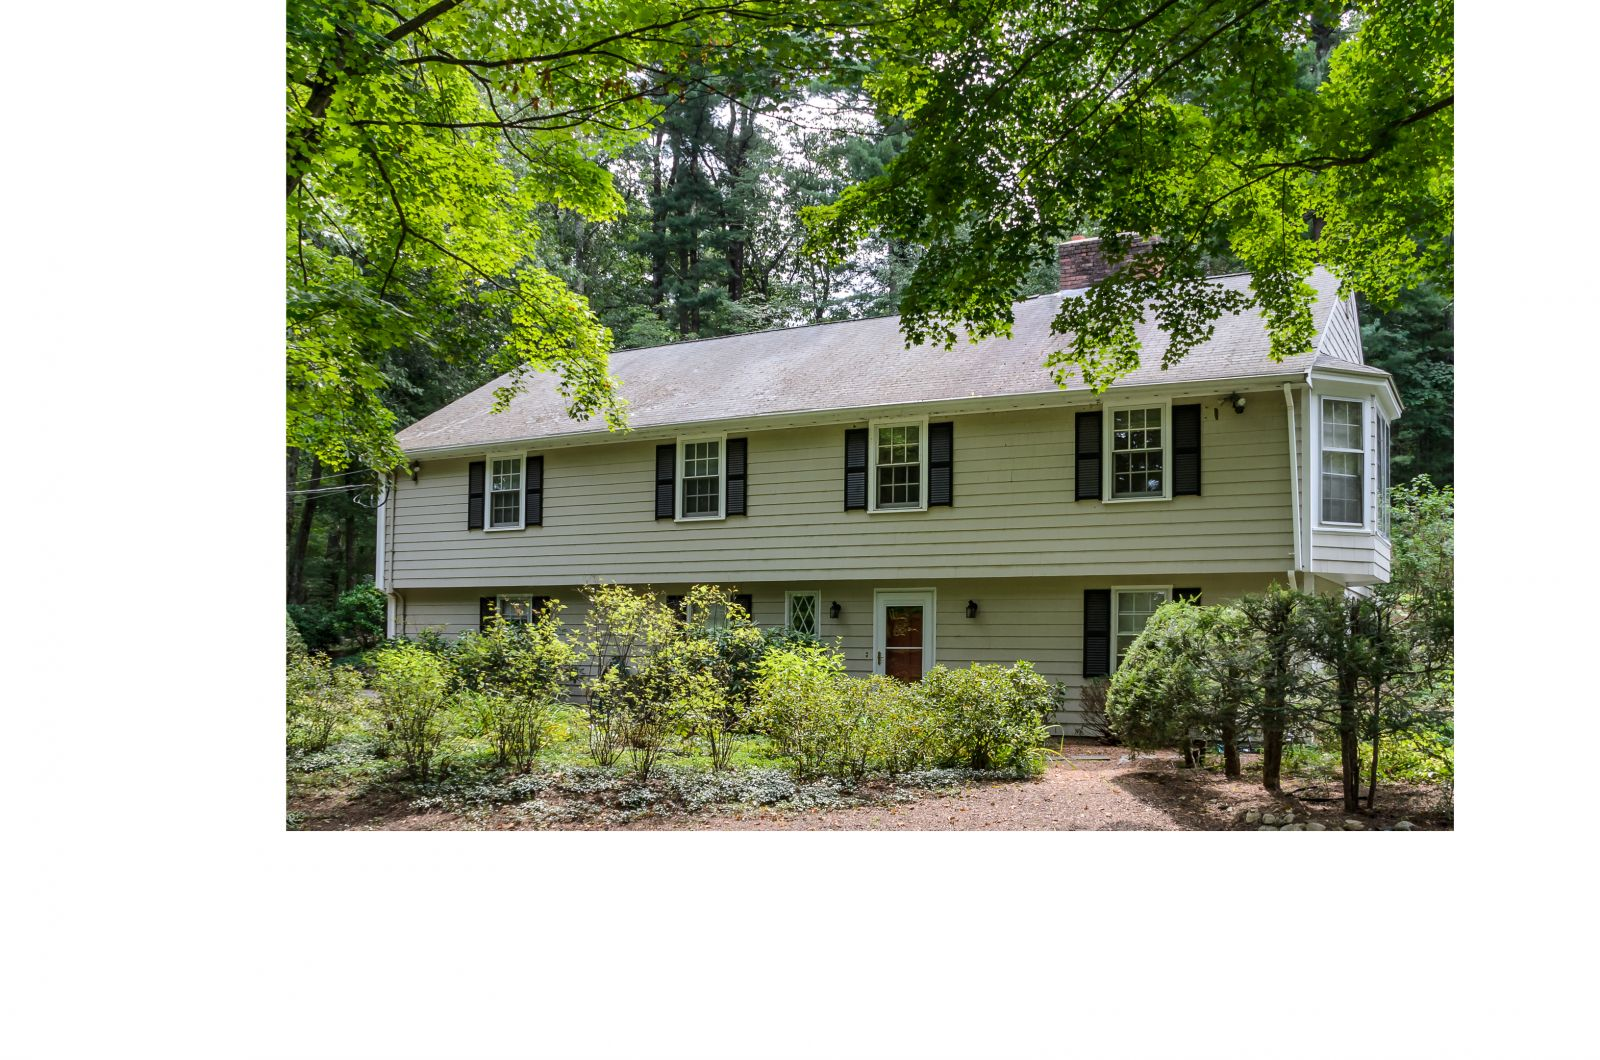 8 Hickory Hill Road in Wayland, MA